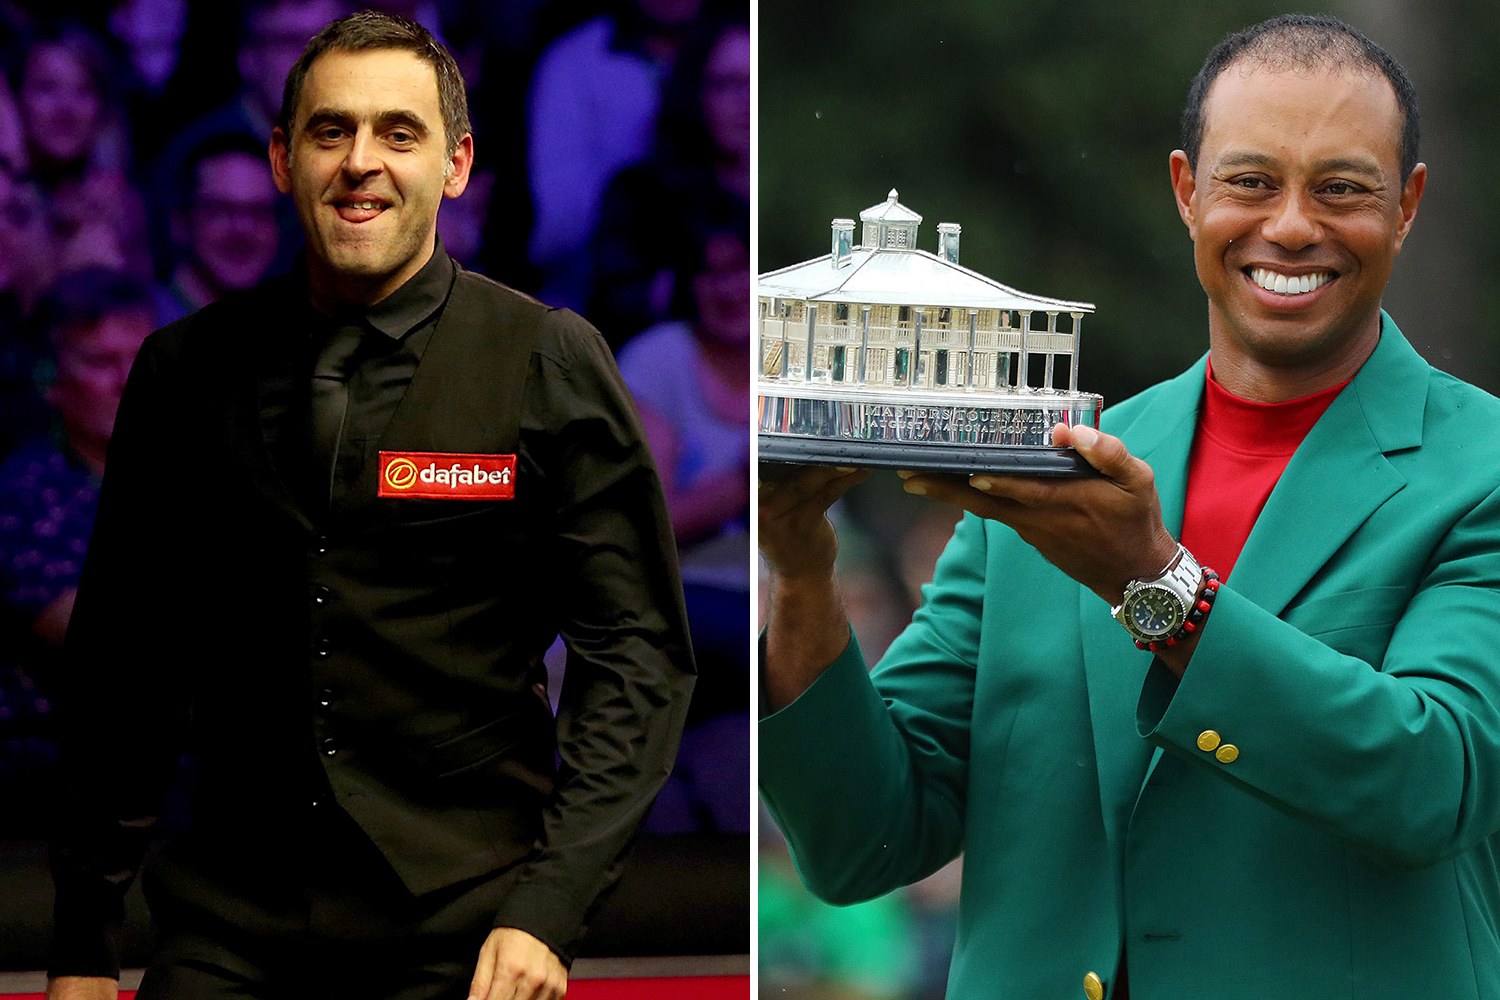 Ronnie O'Sullivan will be looking to follow in the footsteps of golfing legend Tiger Woods by returning to winning ways on the world stage